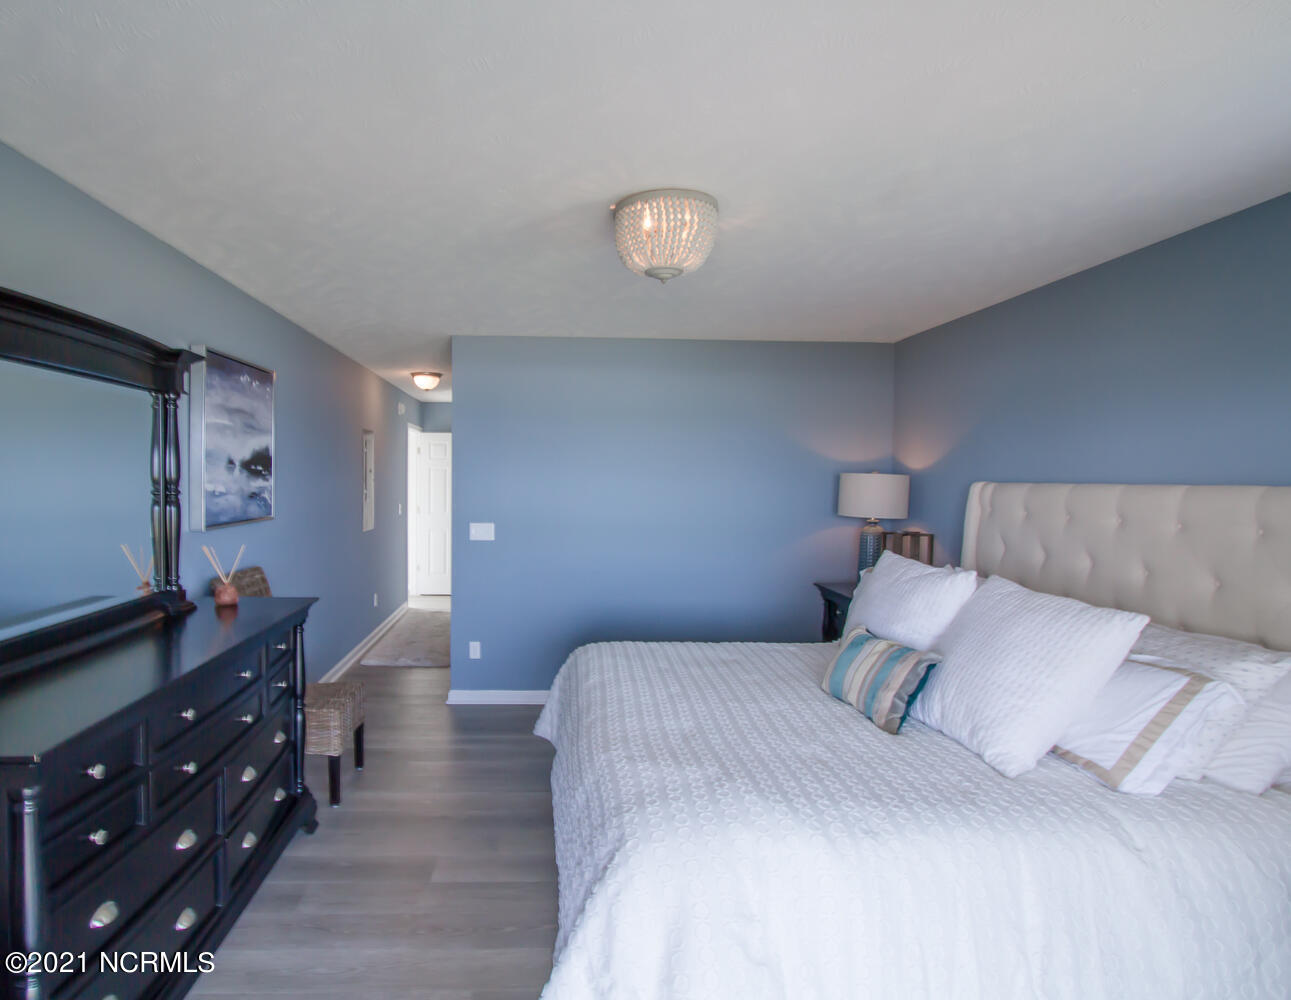 1530 Shore Drive, Surf City, North Carolina 28445, 5 Bedrooms Bedrooms, 7 Rooms Rooms,4 BathroomsBathrooms,Single family residence,For sale,Shore,100277390